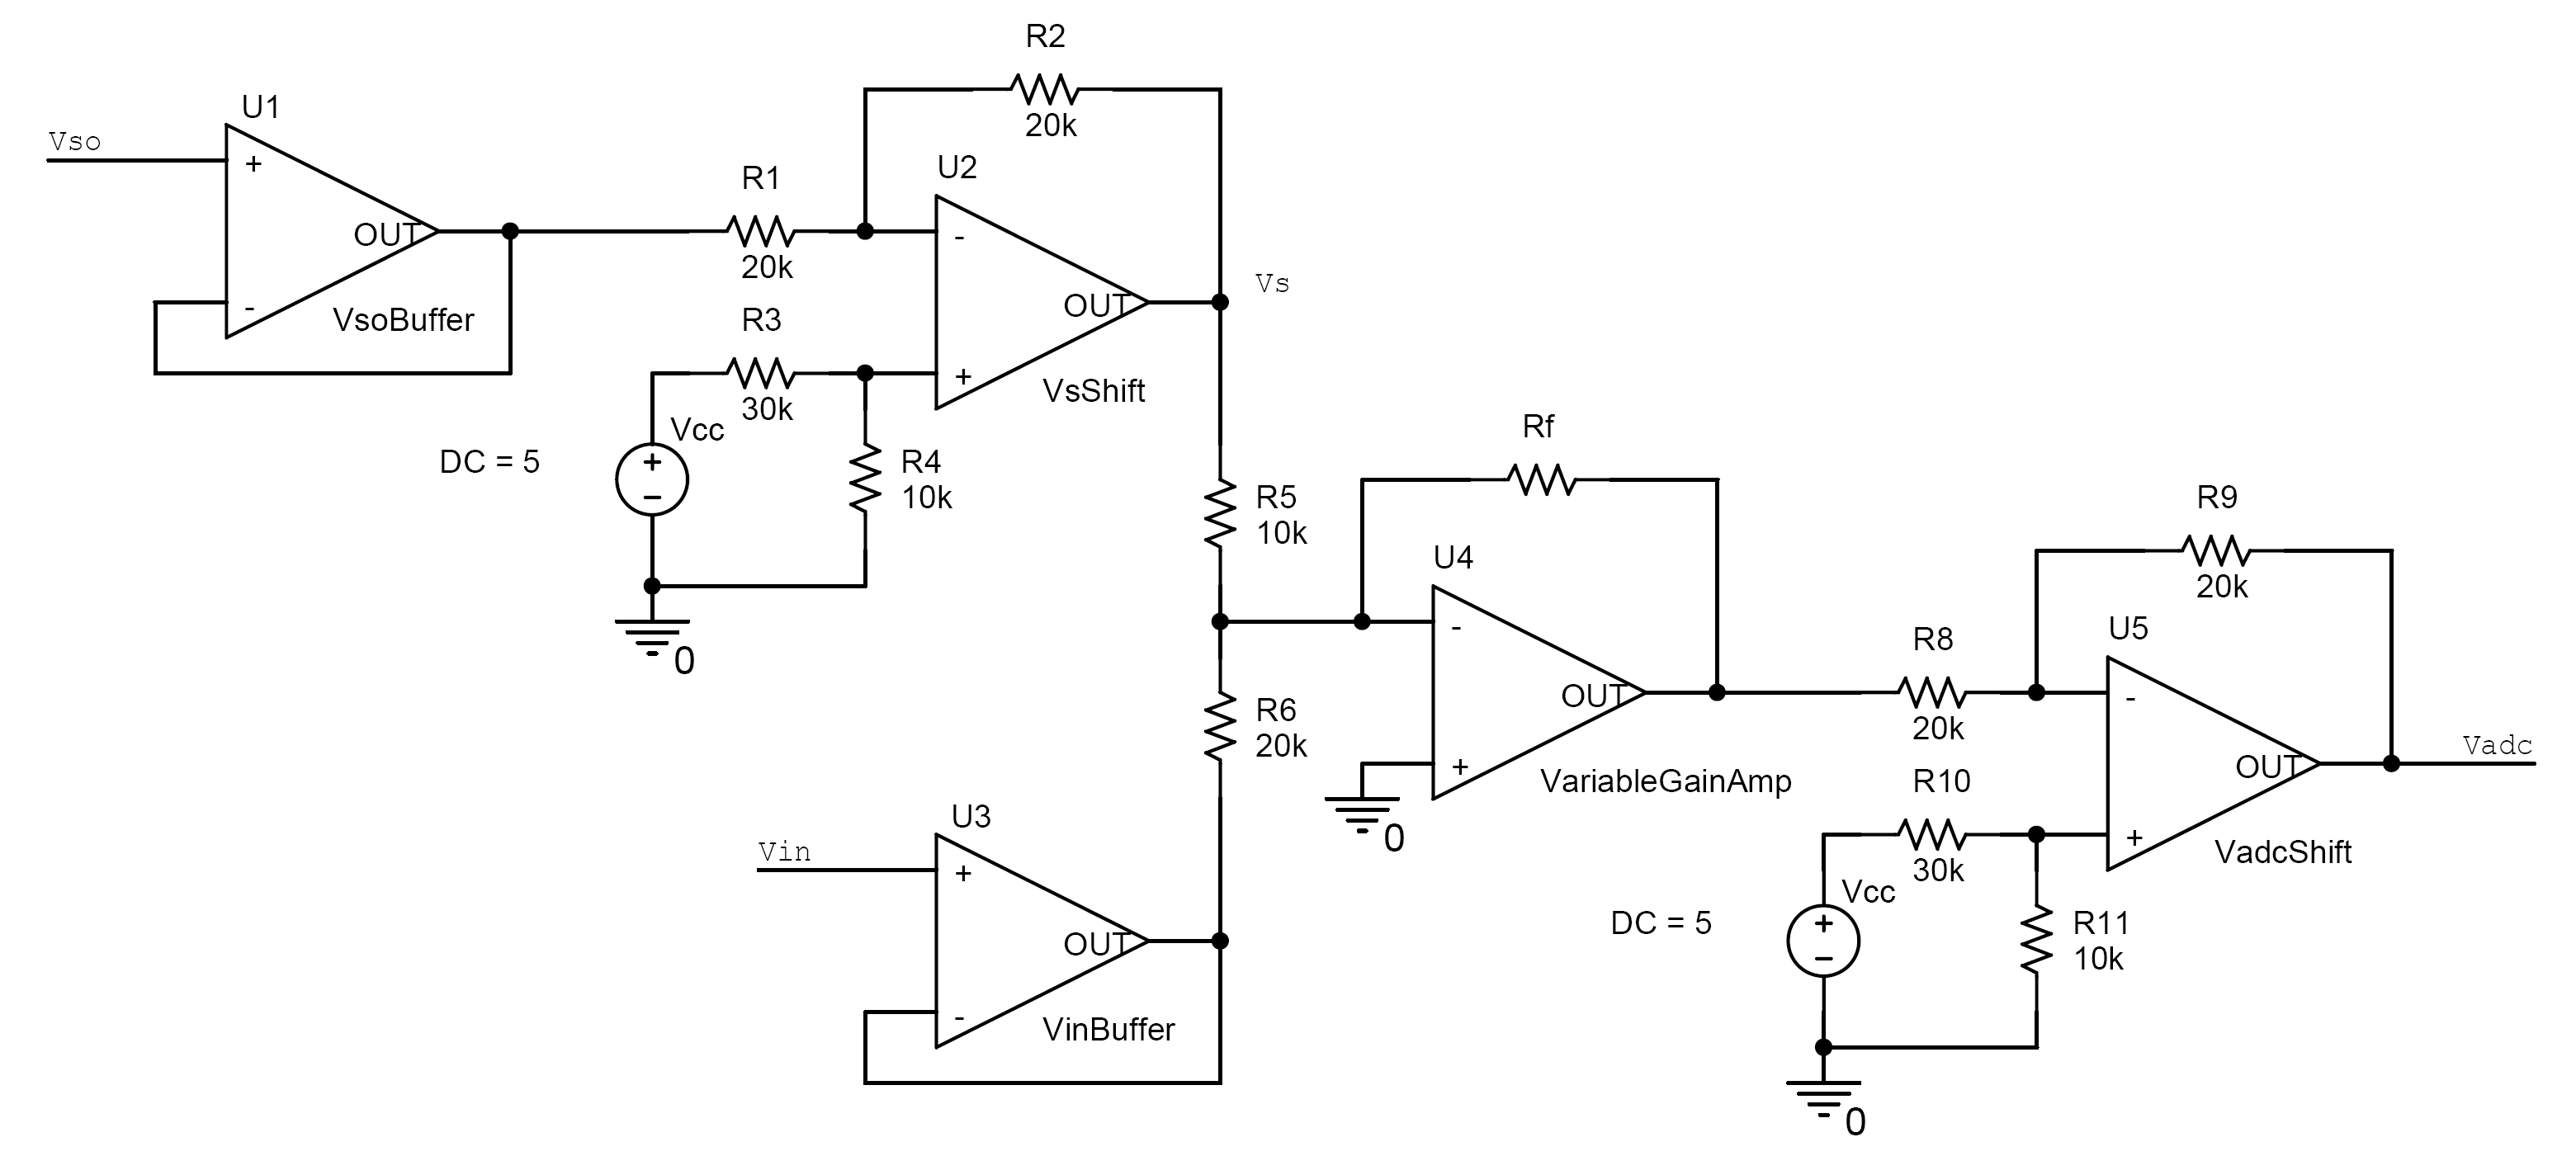 Electronic Circuits Page 531 Amplifier Integrated Circuit Lm358 Dual Op Amp Diagram Lab For The Purpose Of This Project Digital Signals Can Be Communicated With Computers While Analog Cant Rs232 Is Name Given To Your Serial Port